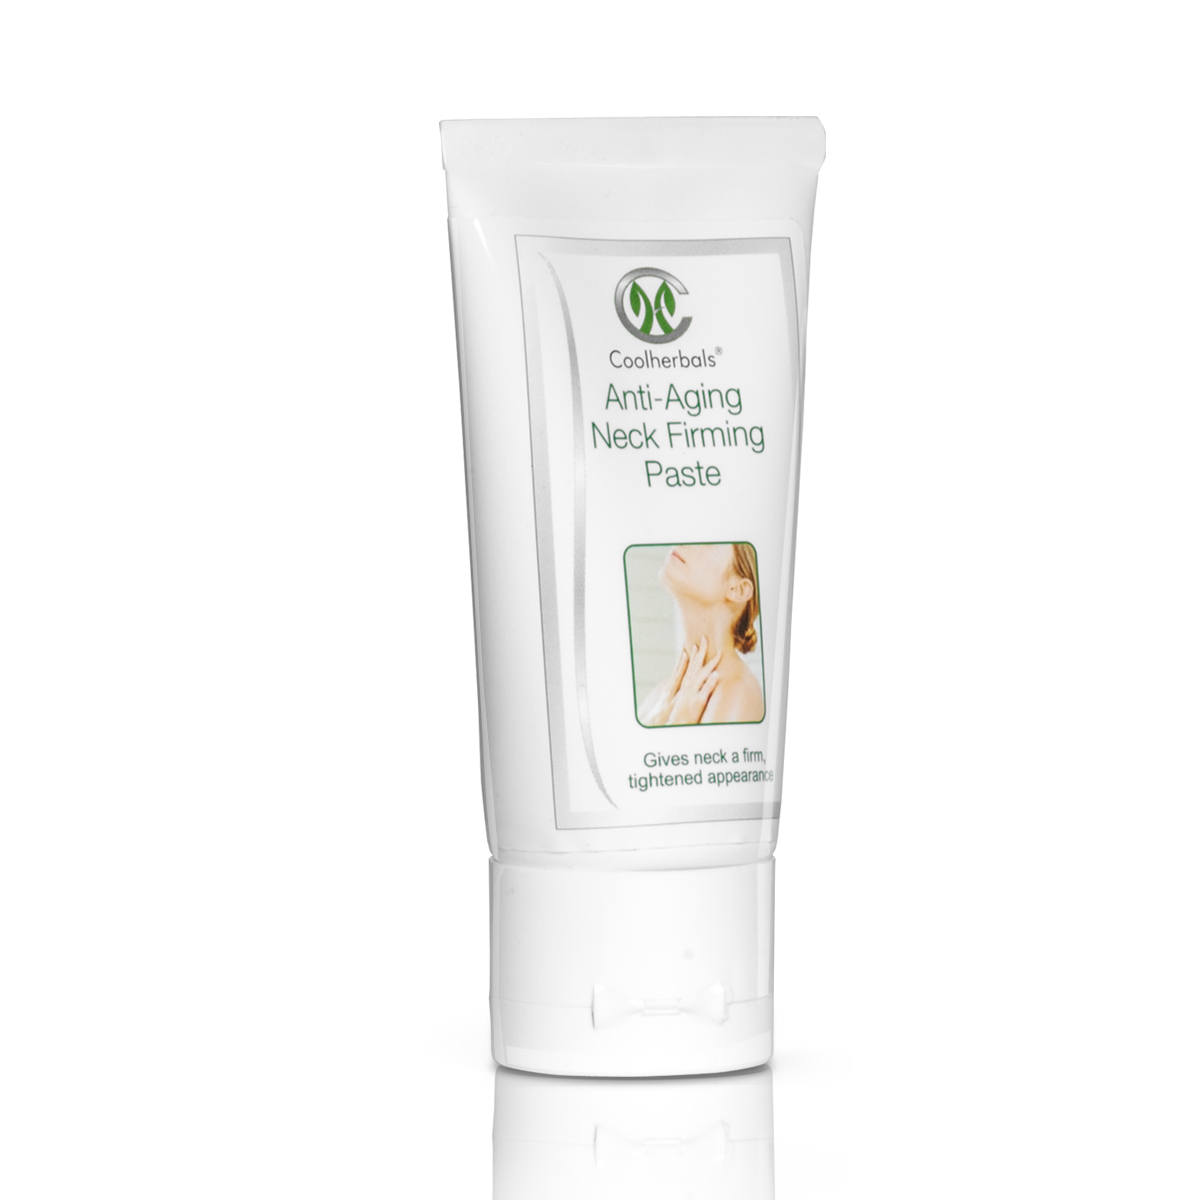 Anti-Aging Neck Firming Paste contains a rich blend of Clays to smooth over aging lines